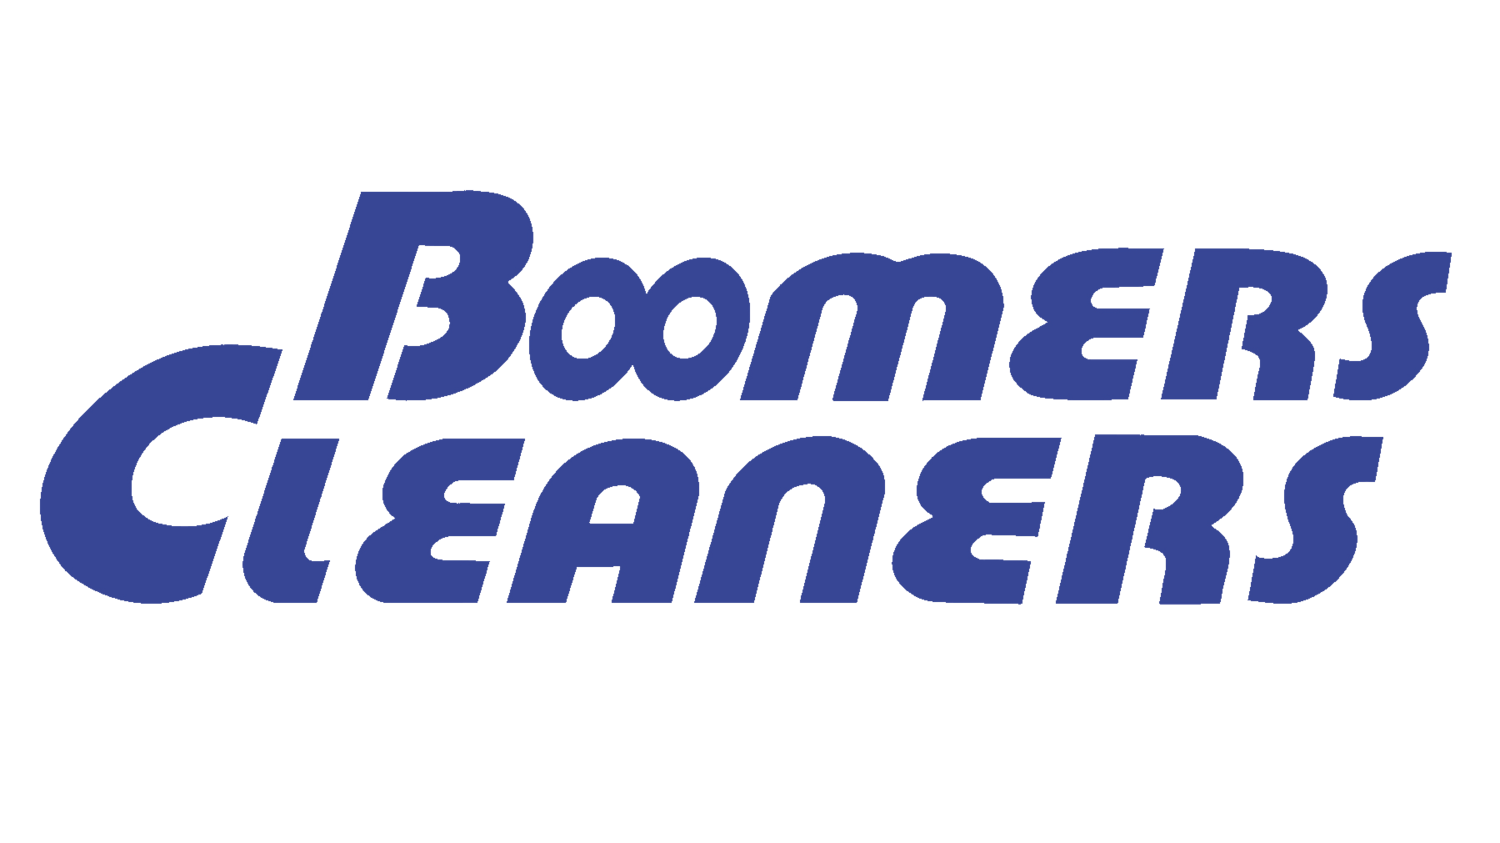 Boomers Cleaners | West Michigan's Best Carpet Cleaner